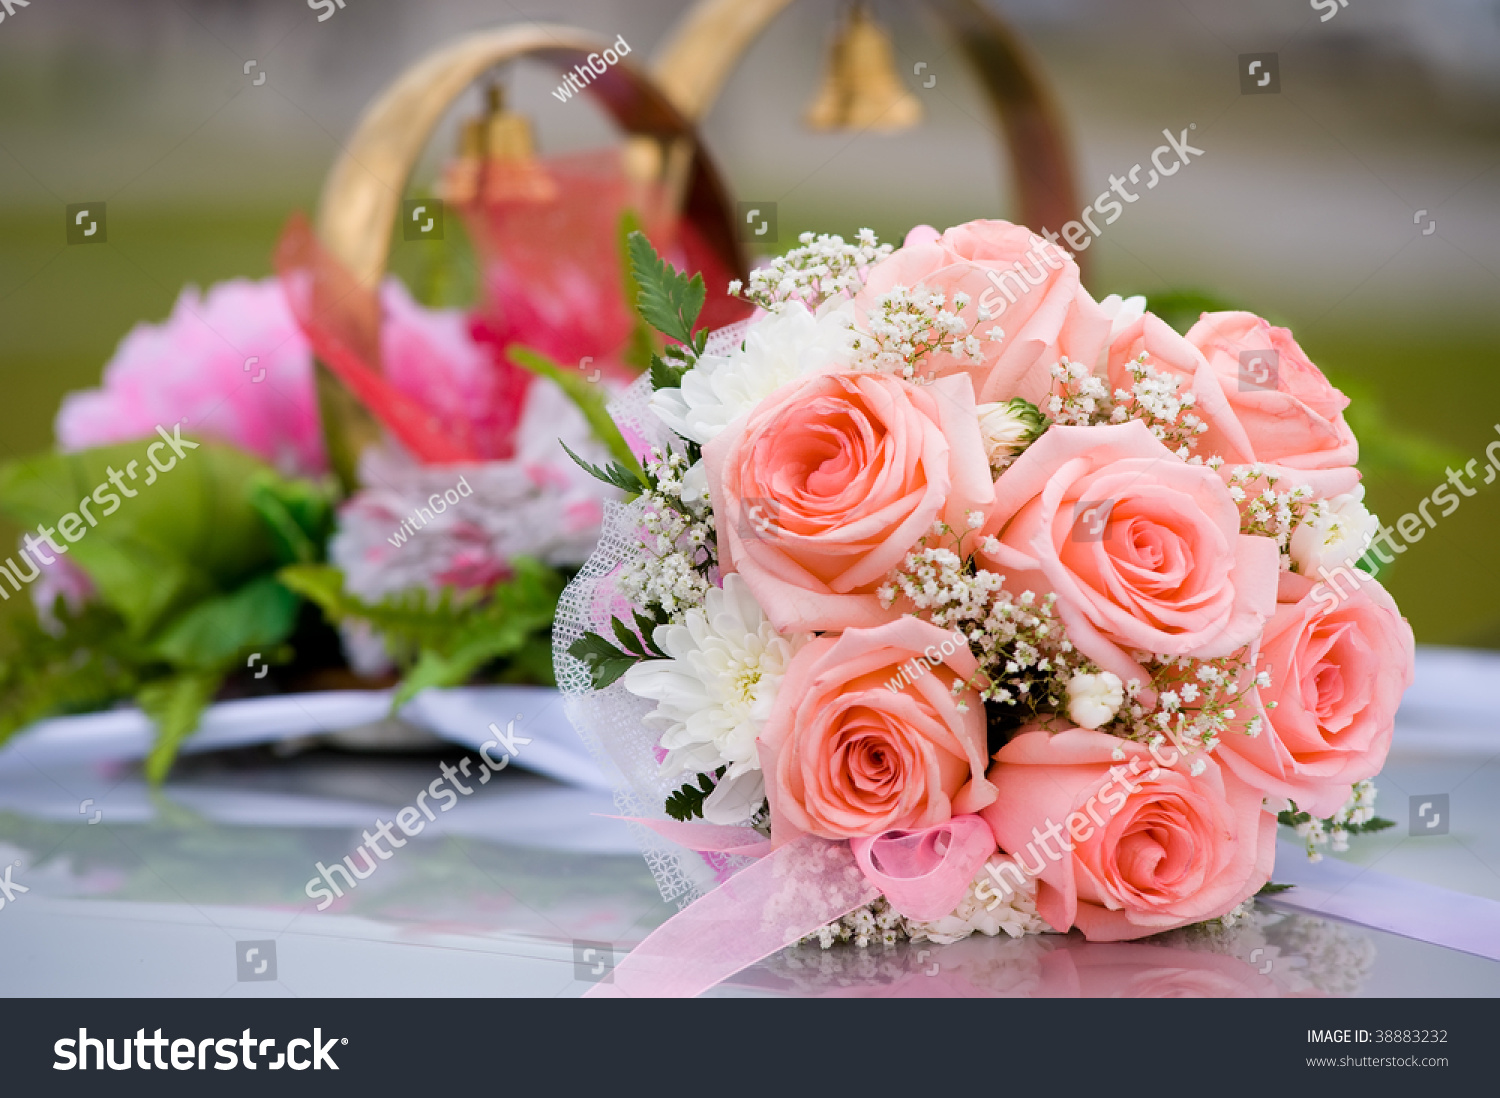 Brides Bouquet Roses Against Car Wedding Stock Photo (Royalty Free ...